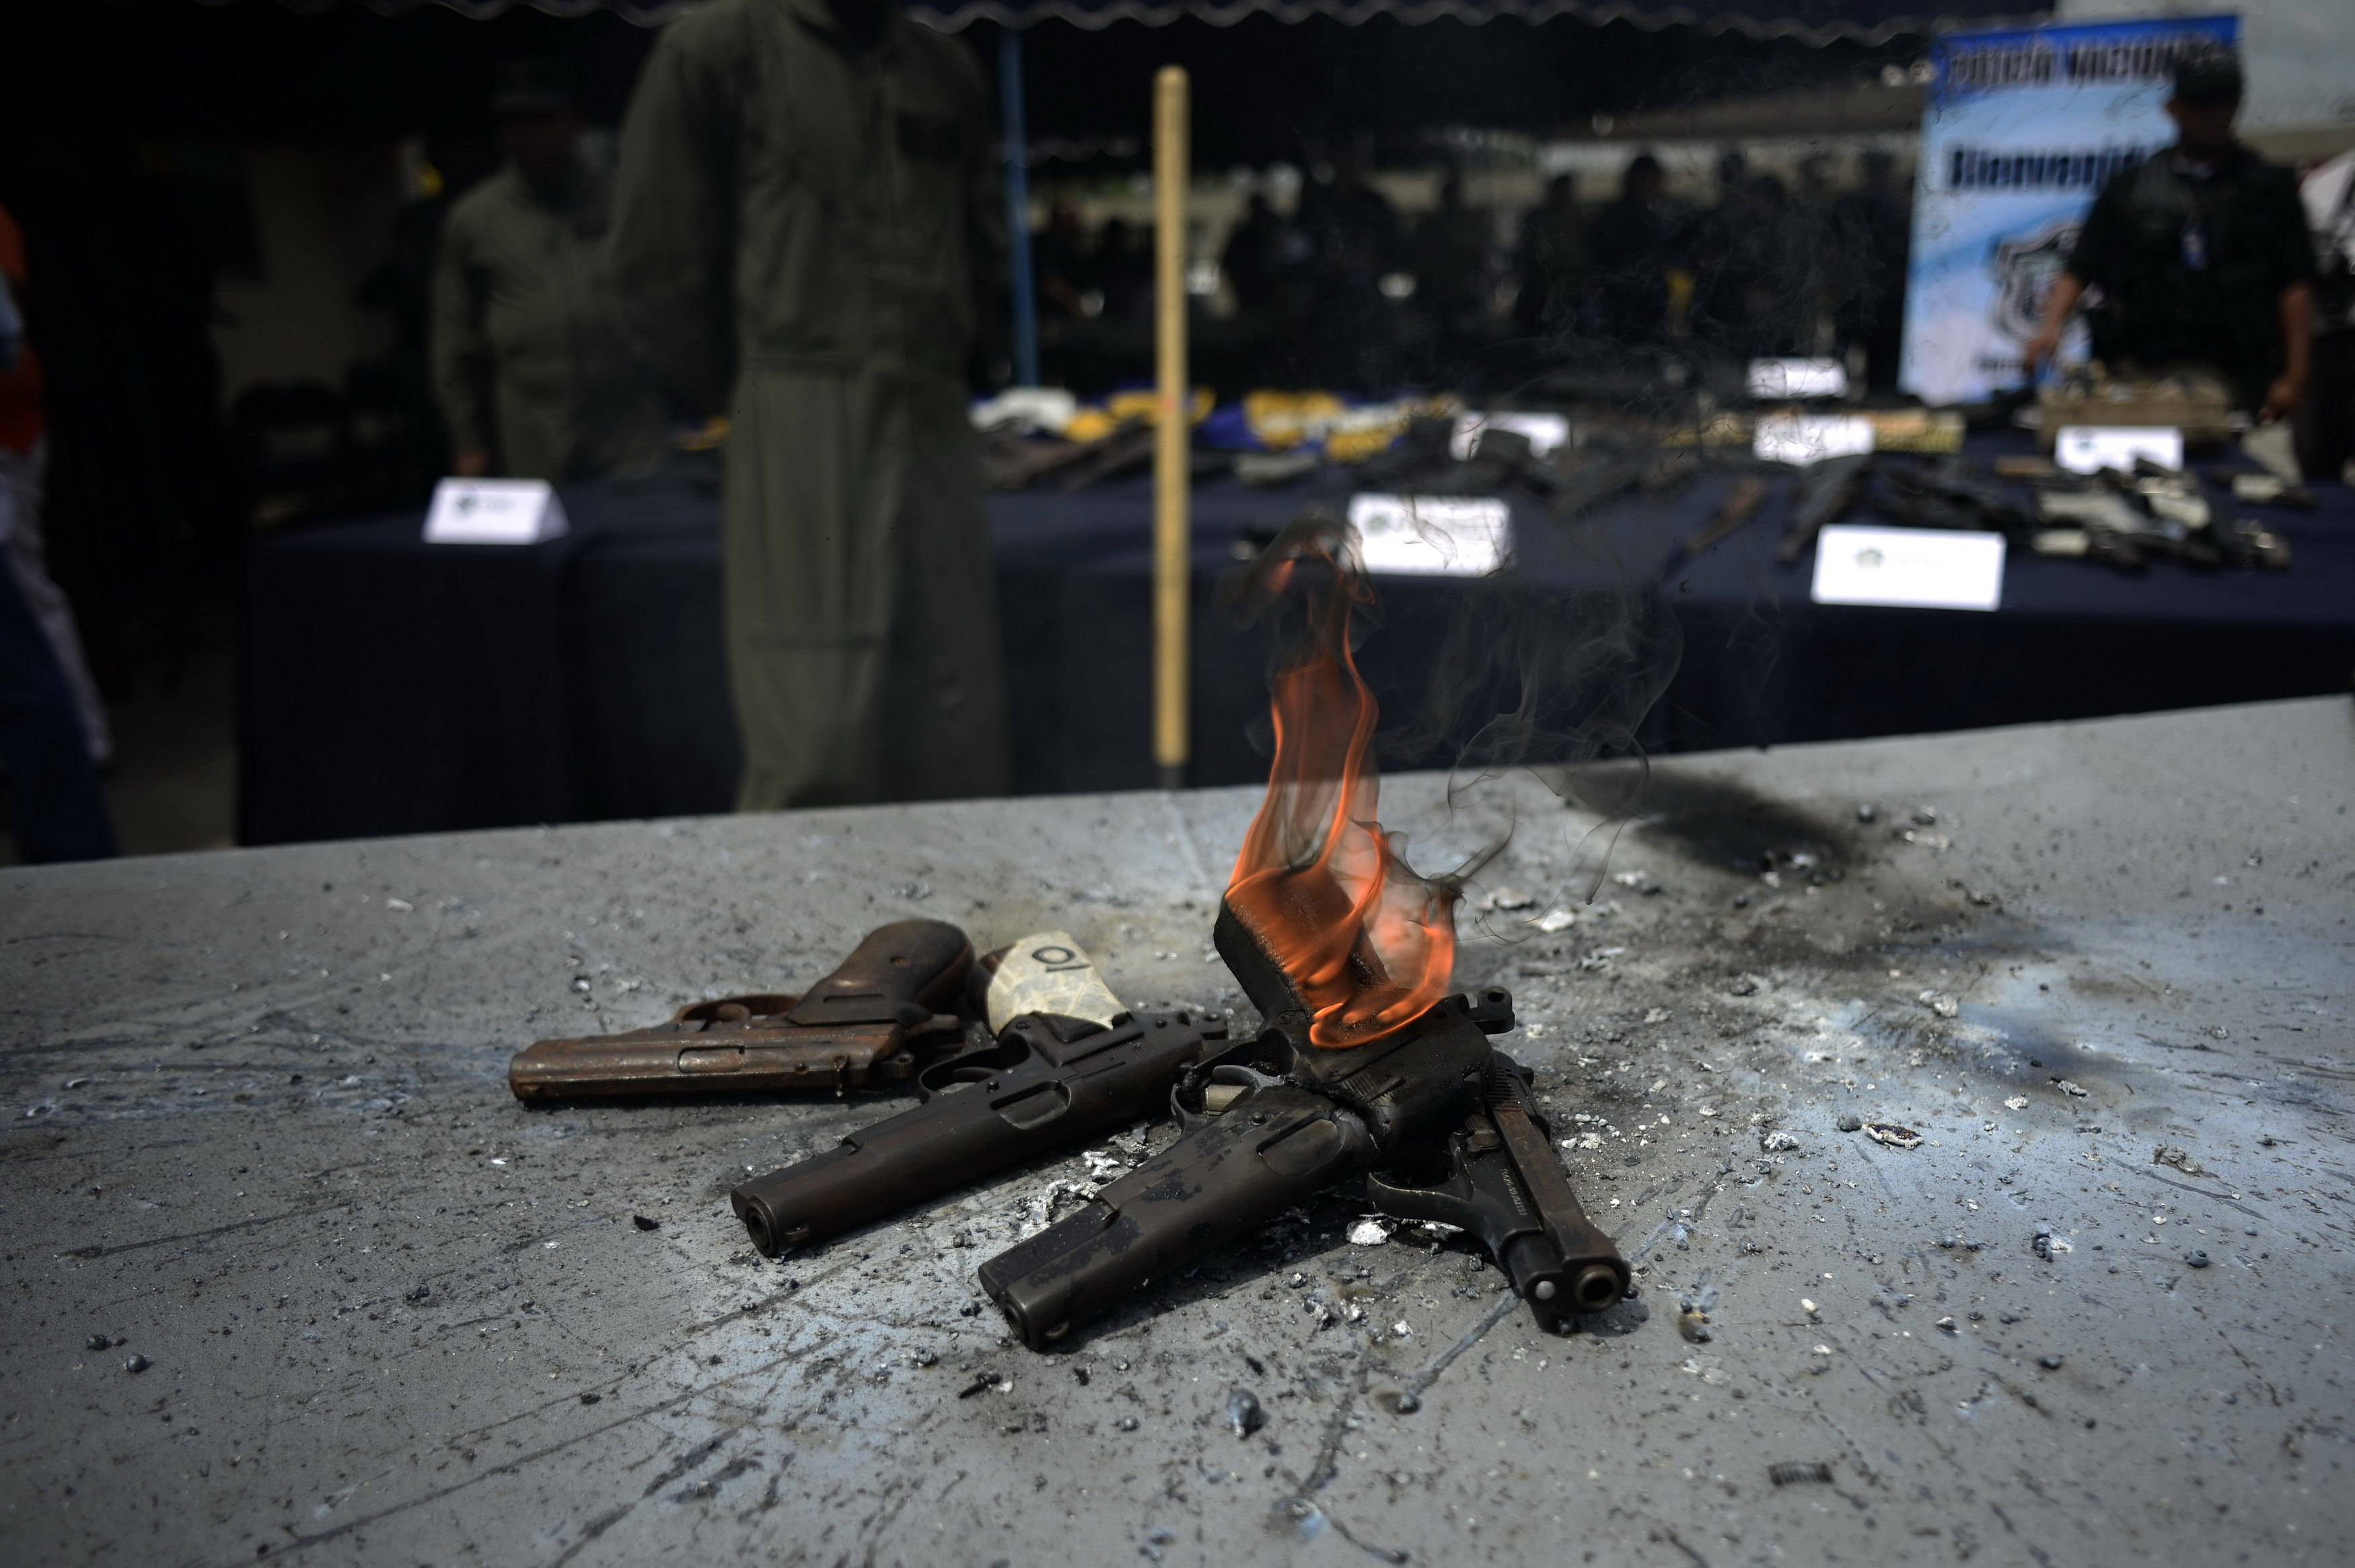 Aug. 6, 2014. Members of National Police of Panama take part in an official act of destruction of one hundred weapons in Panama City, capital of Panama.